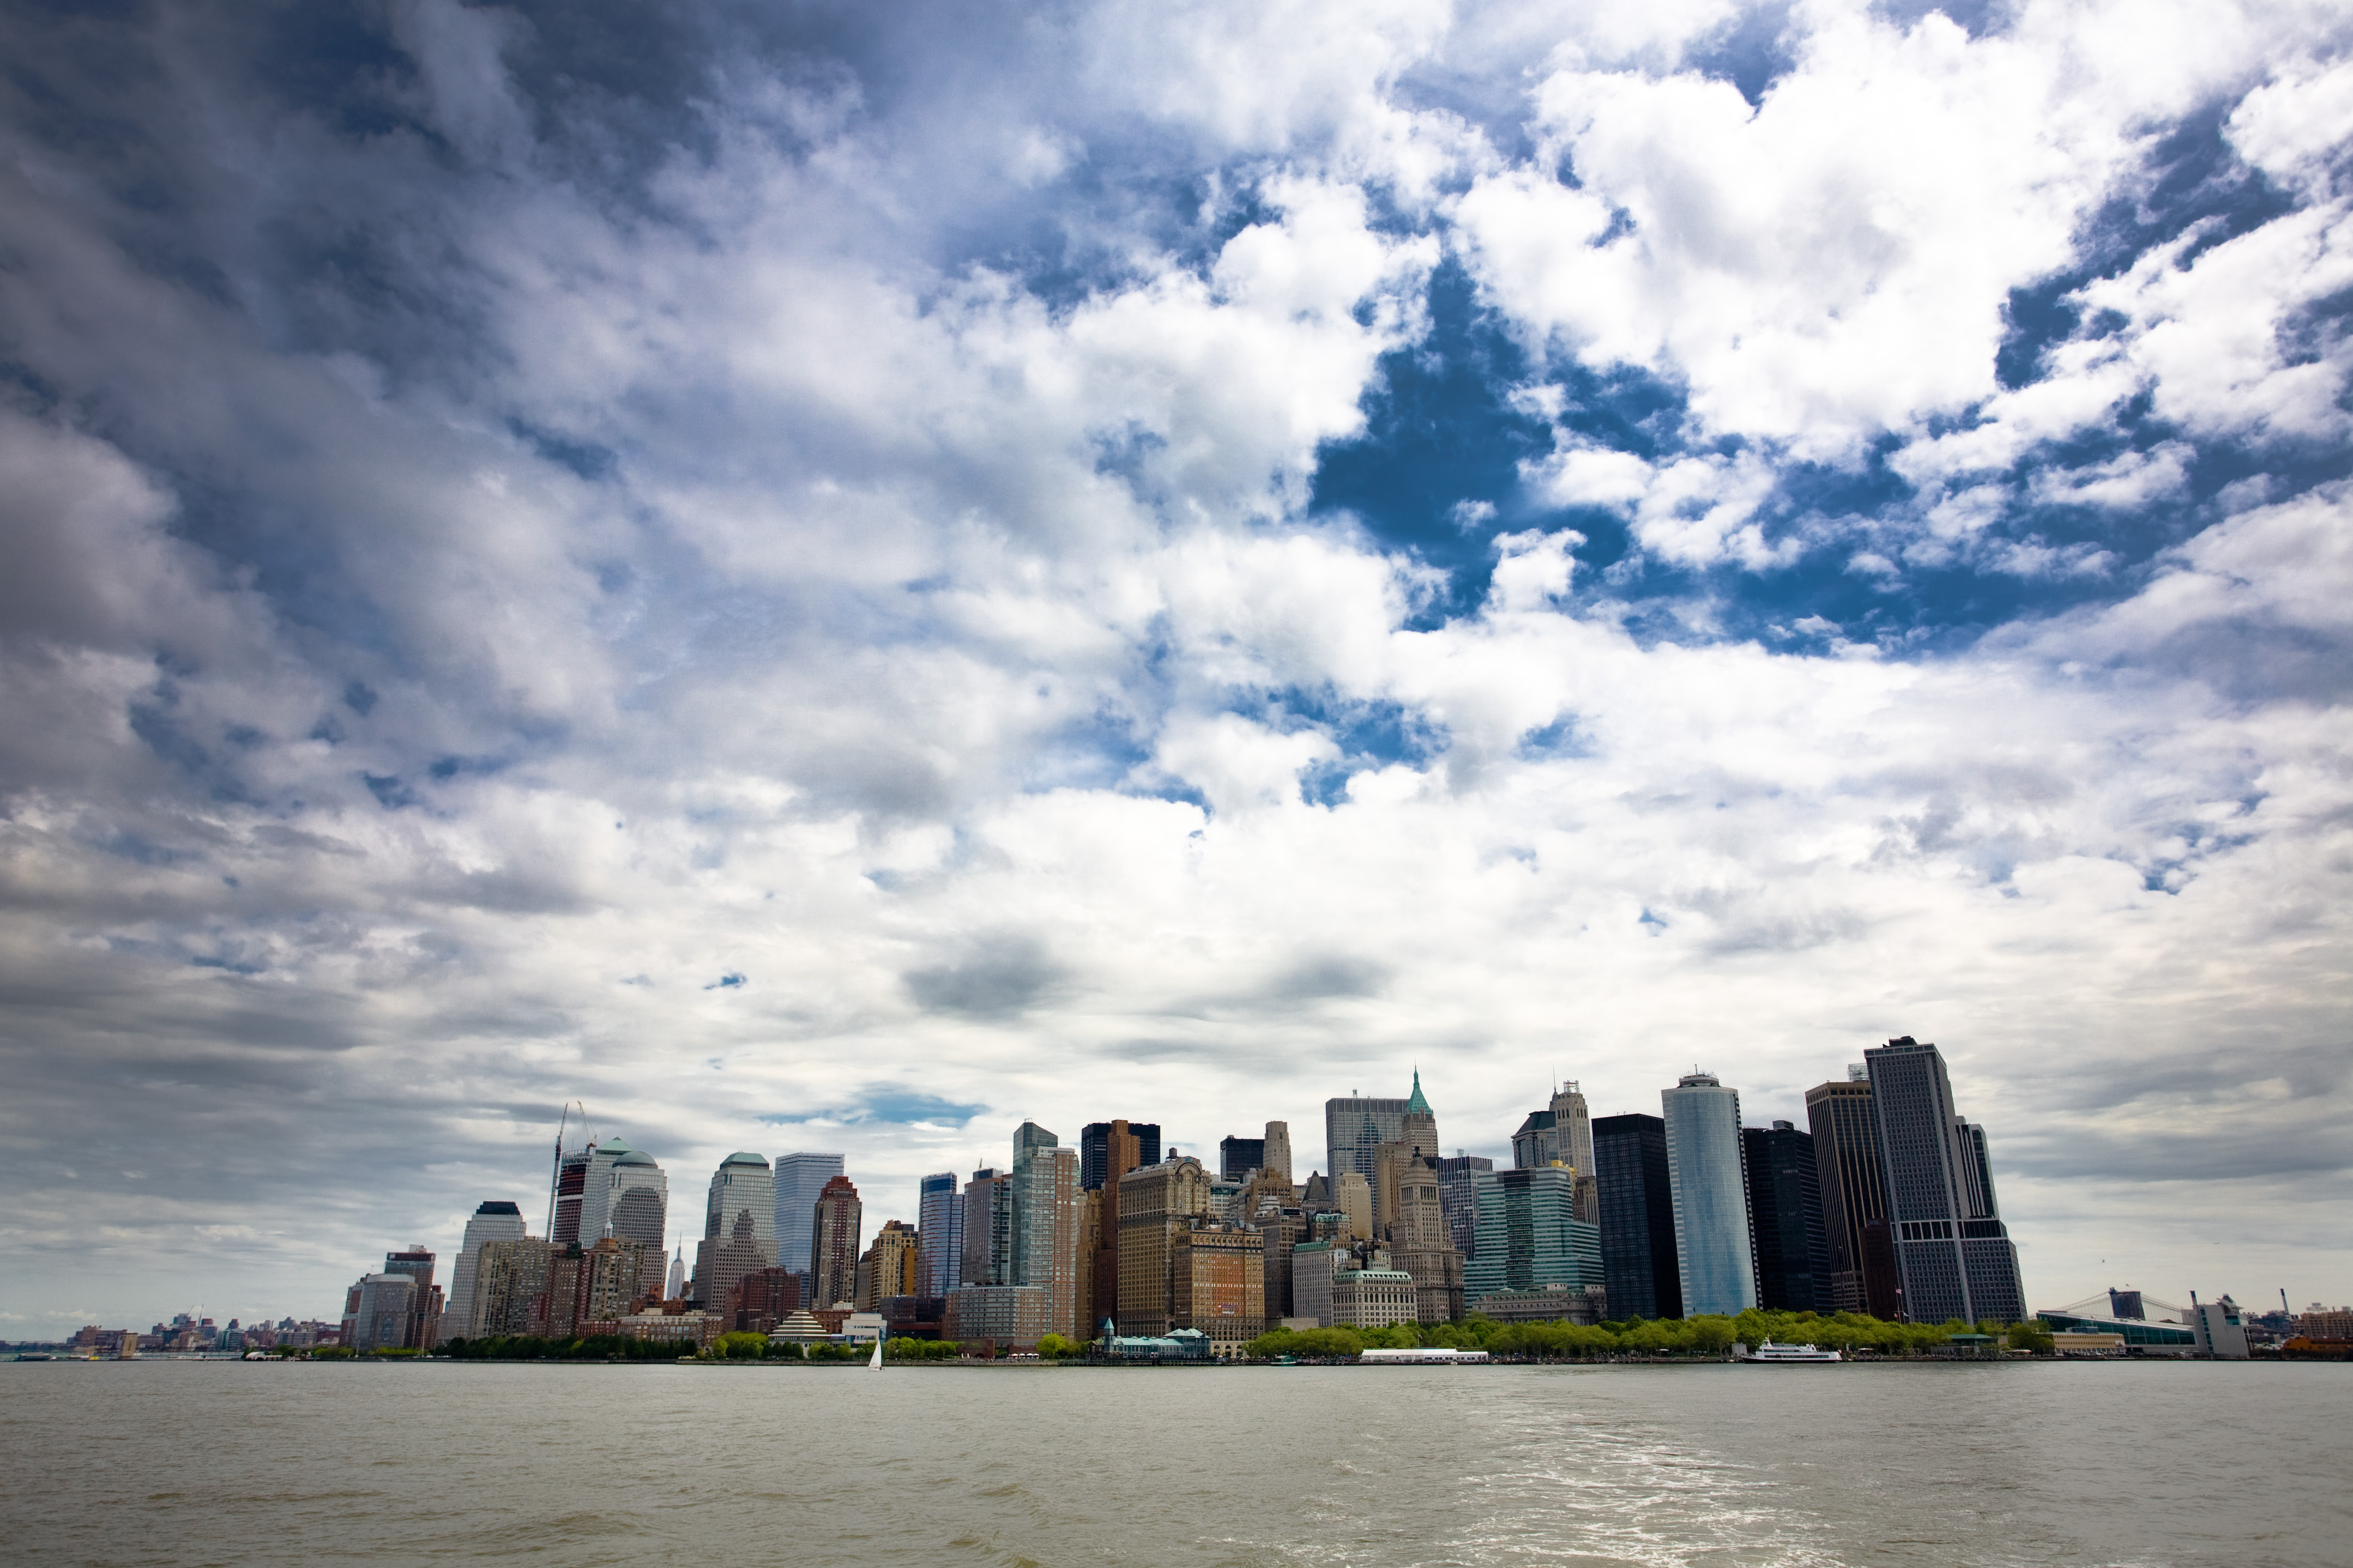 File:New York City, by day (2491602306).jpg - Wikimedia Commons